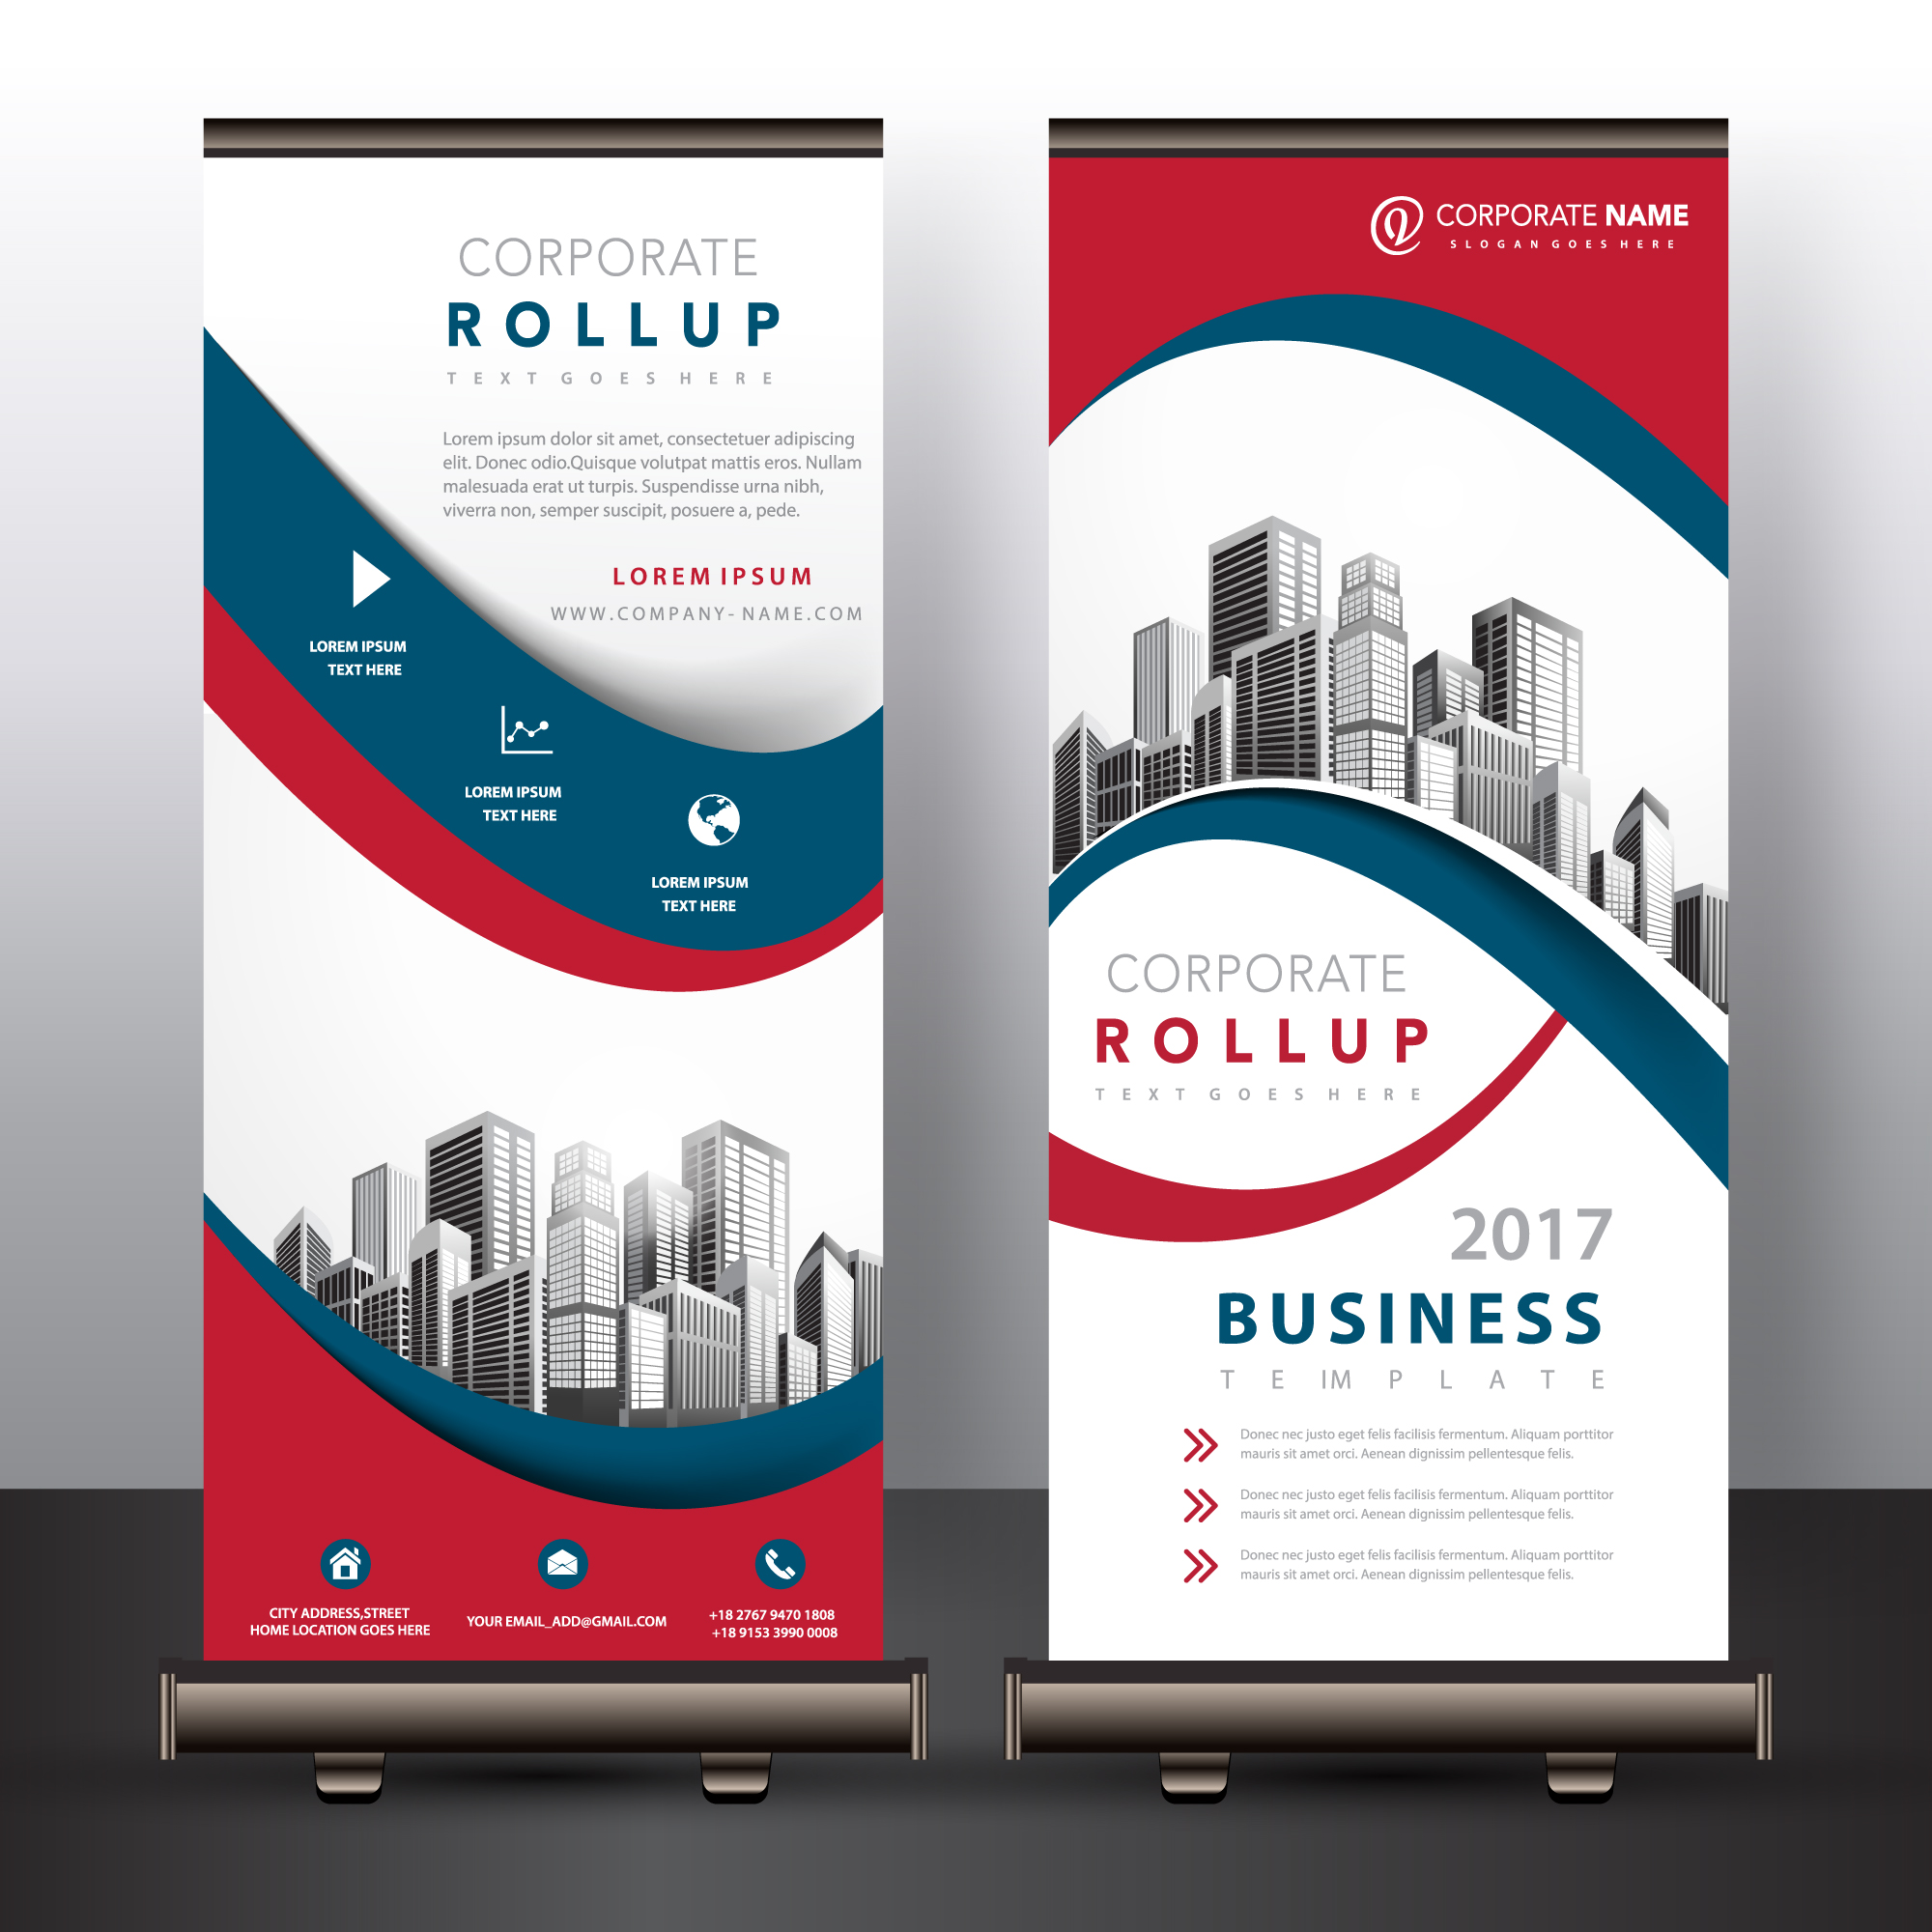 Mehrfarbiges Roll-up-Design